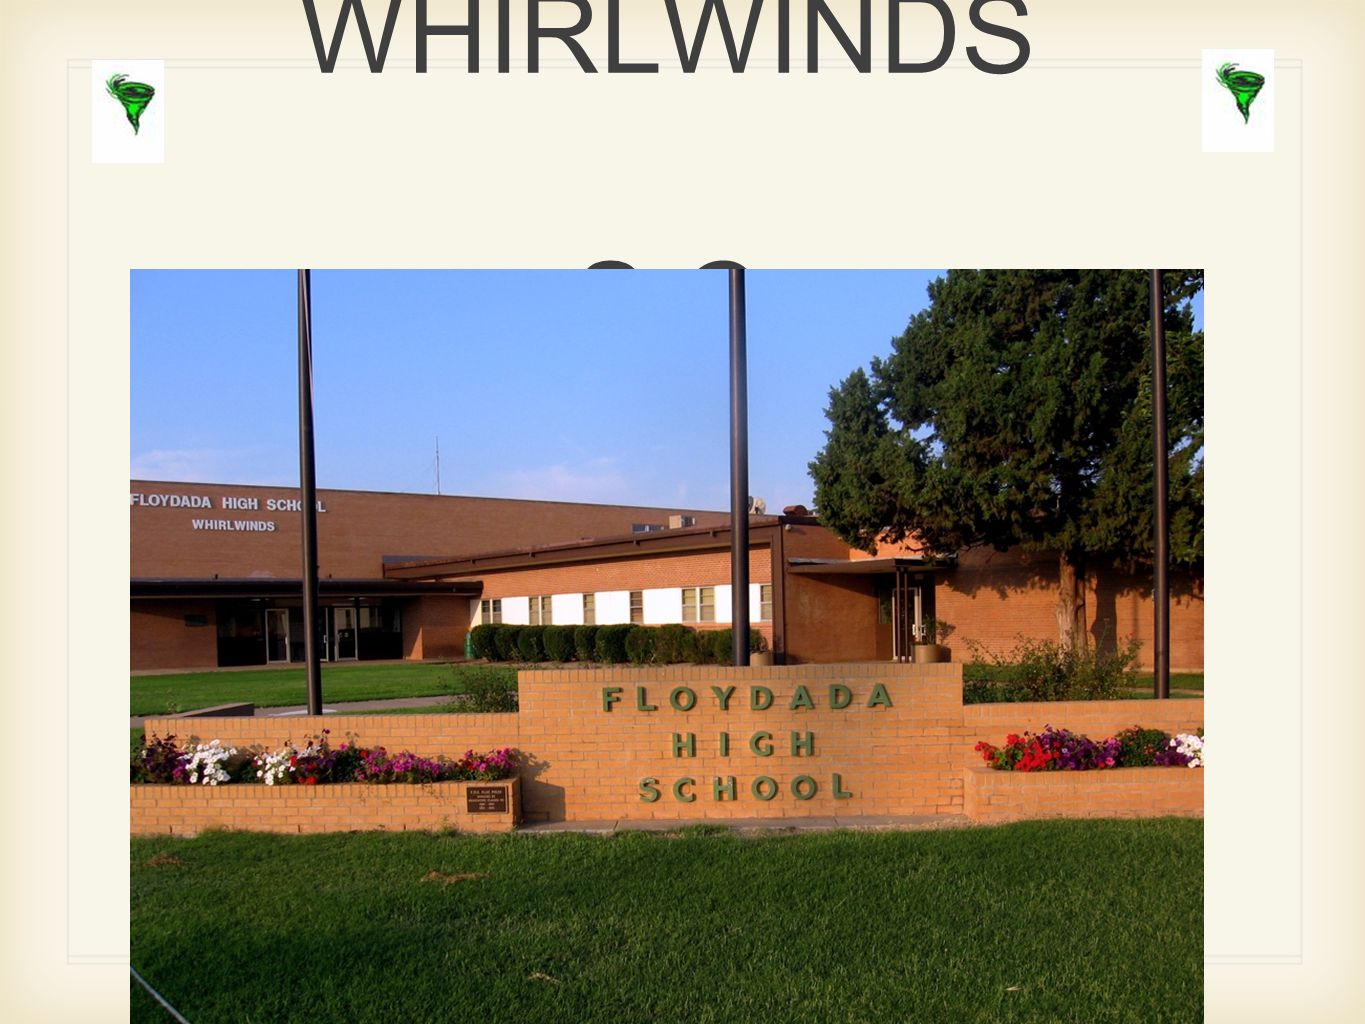 WHIRLWINDS S C